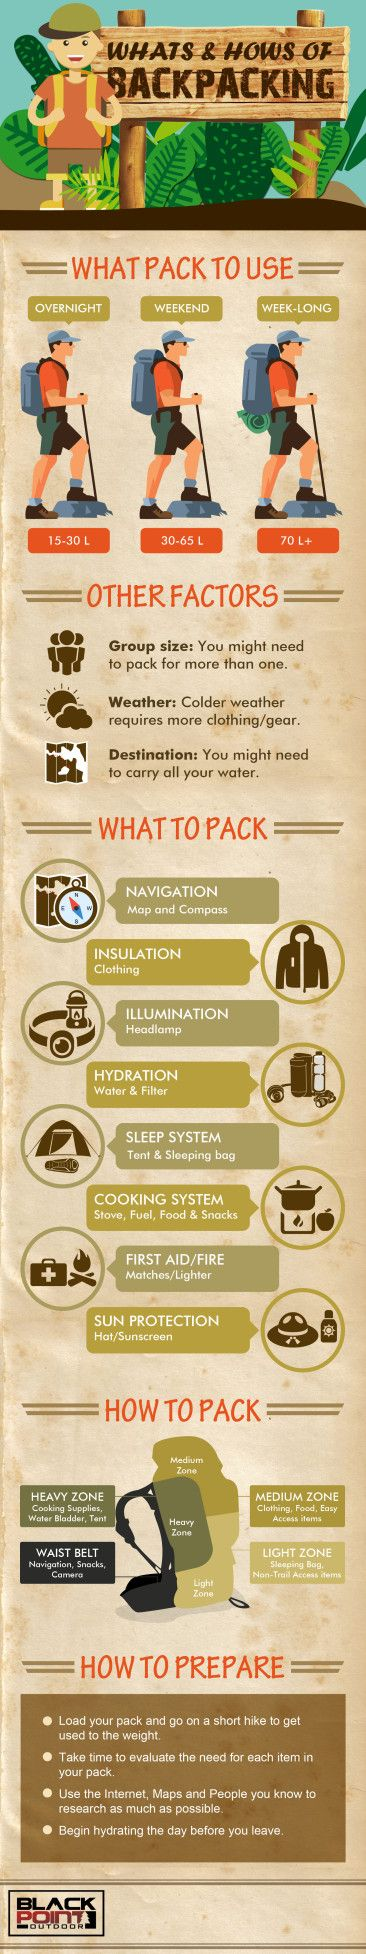 Infographic - Blackpoint Backcountry